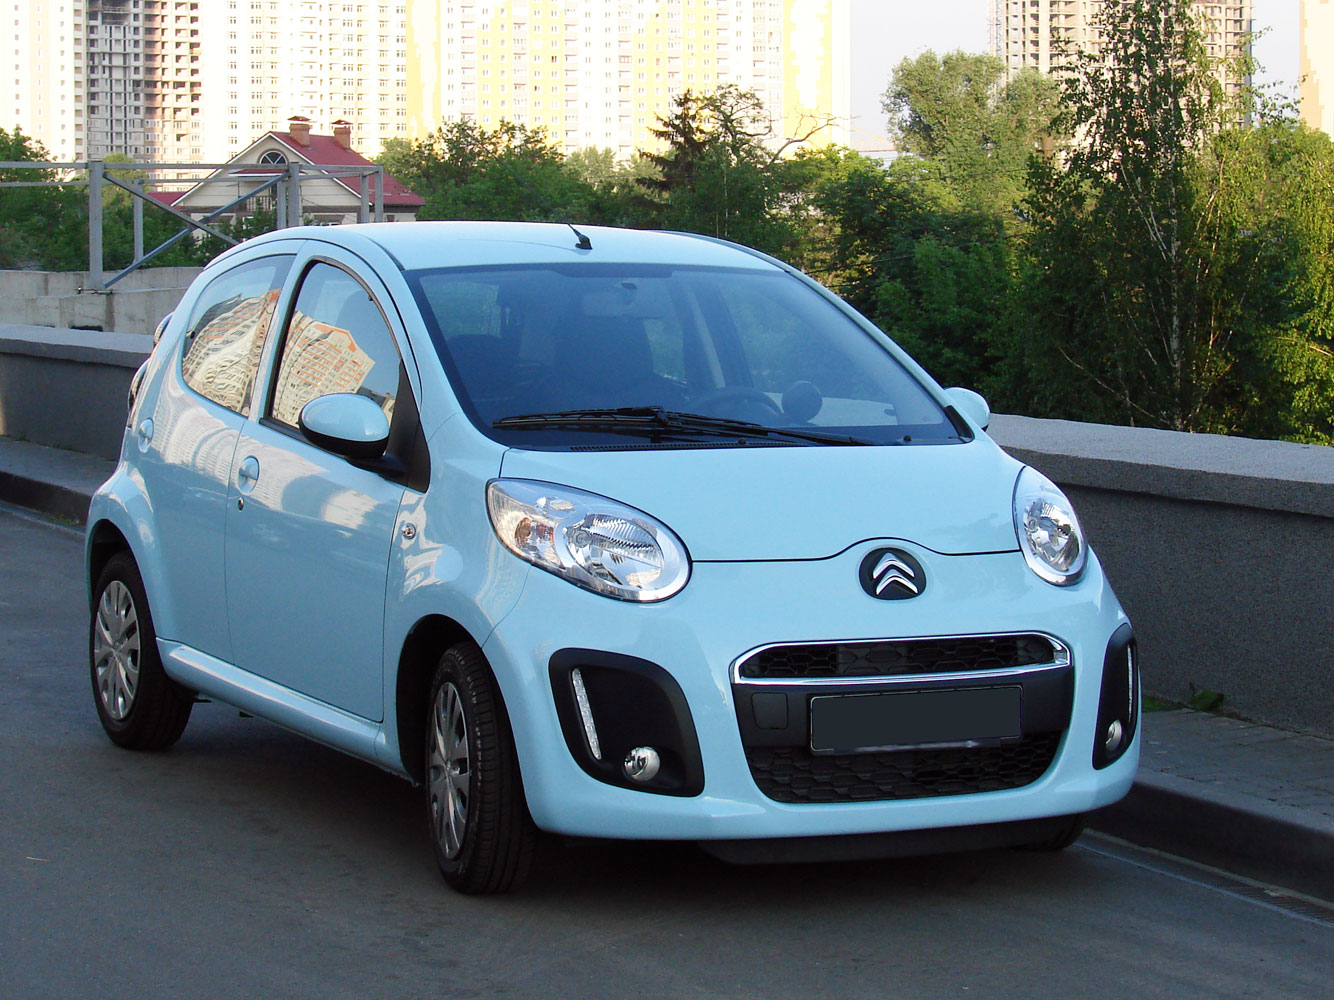 Description Citroen C1 2012 facelift.jpg